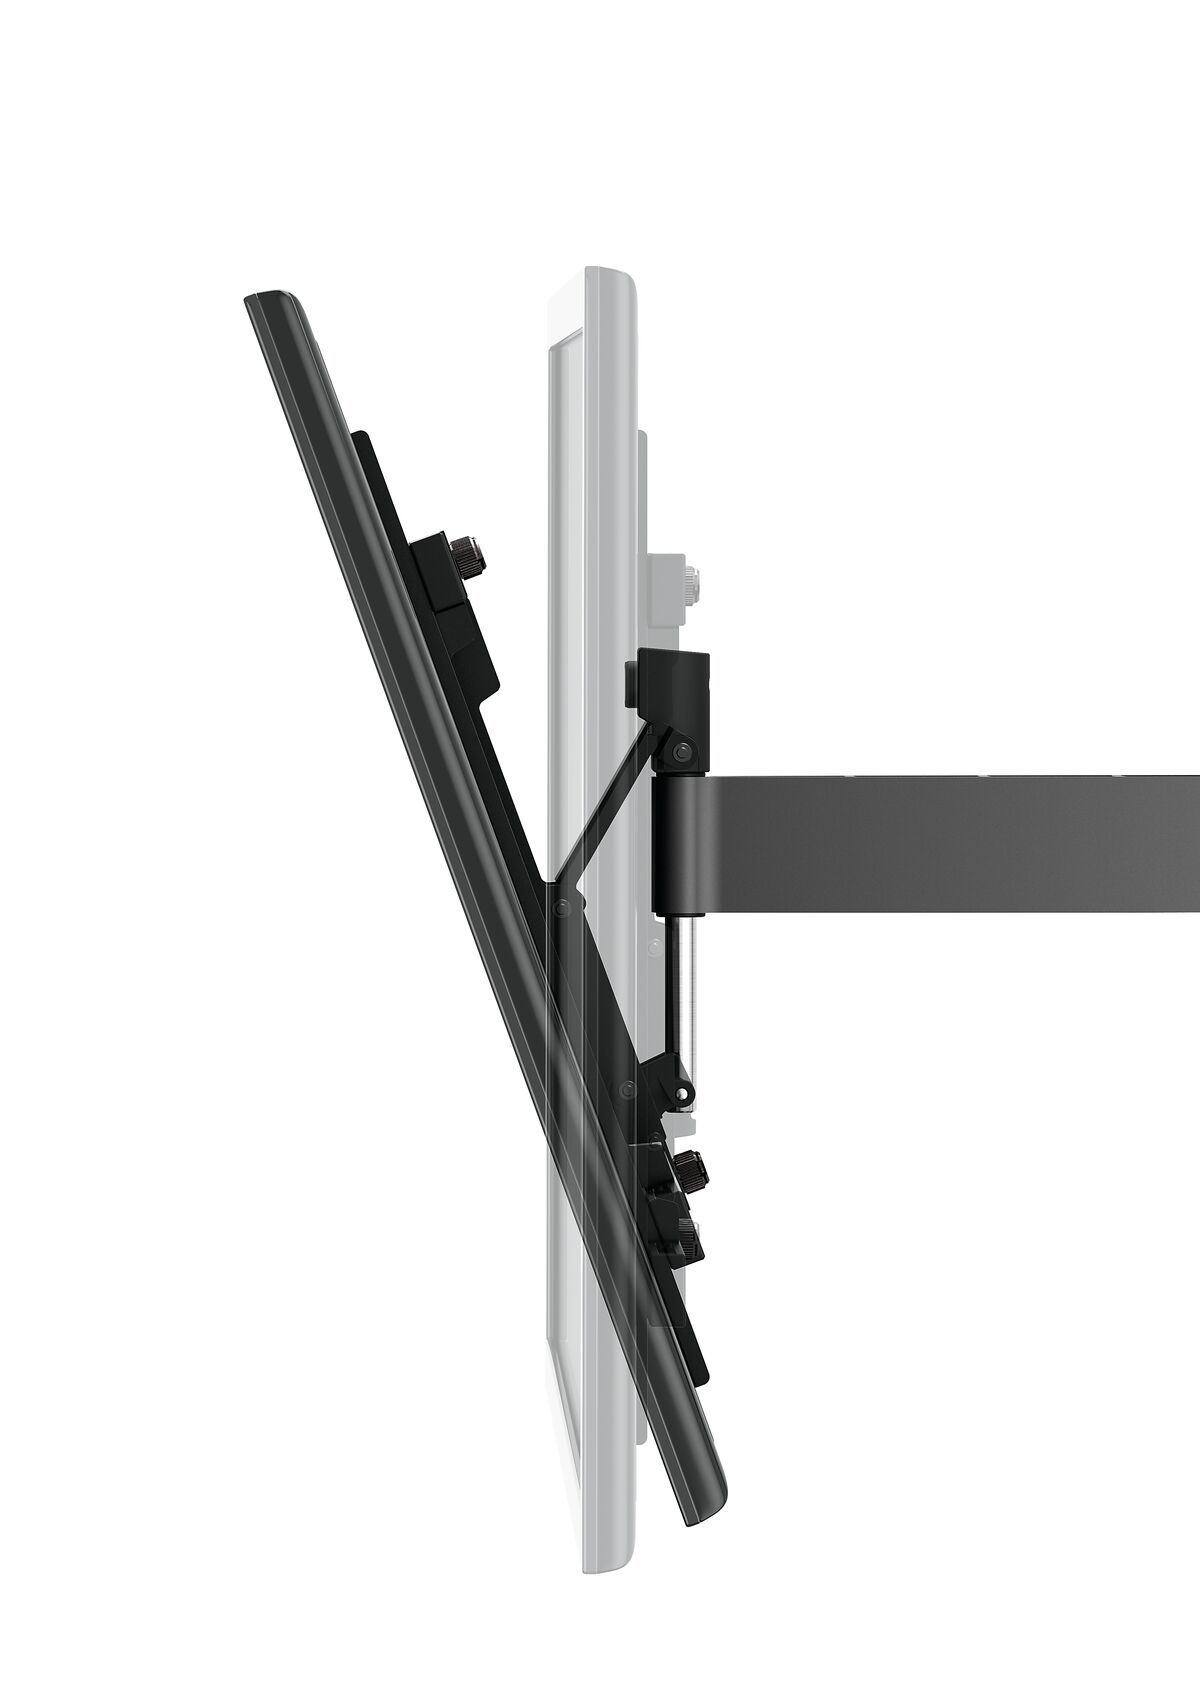 Vogel's WALL 2225 Full-Motion TV Wall Mount (white) - Suitable for 32 up to 55 inch TVs - Motion (up to 120°) - Tilt up to 20° - Detail